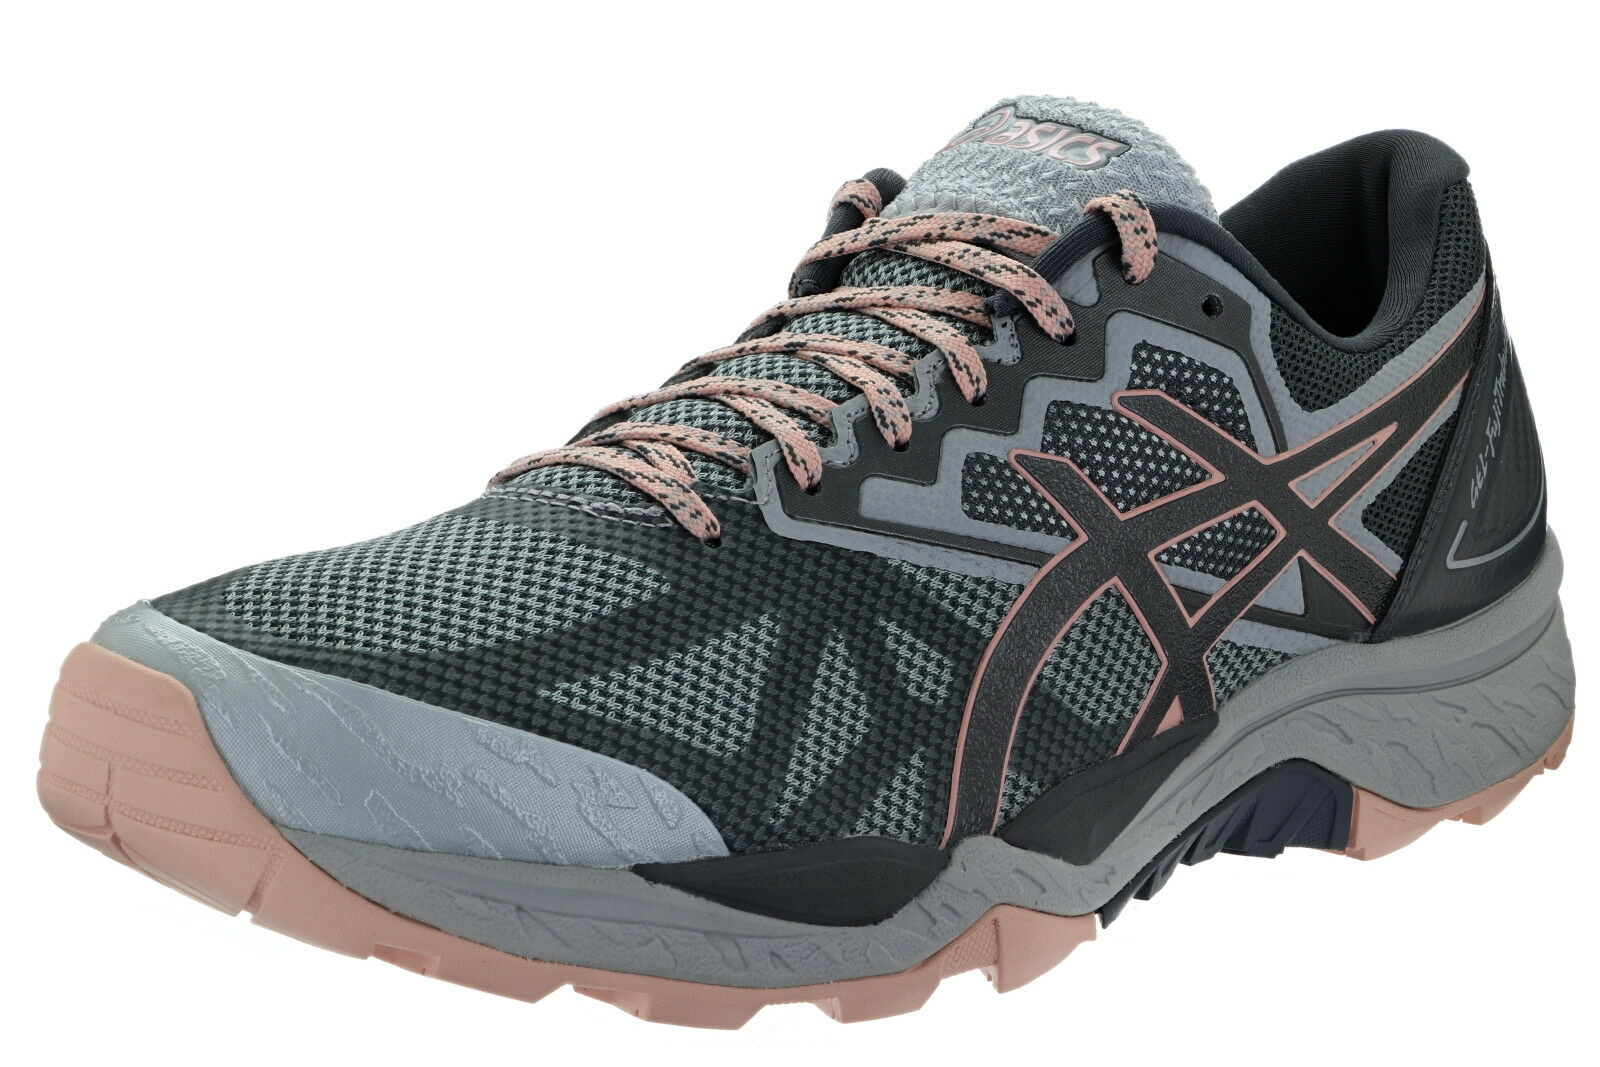 Asics Gel-FujiTrabuco 6 Damenschuhe Medium Width Trail Running Schuhes T7E9N-9697